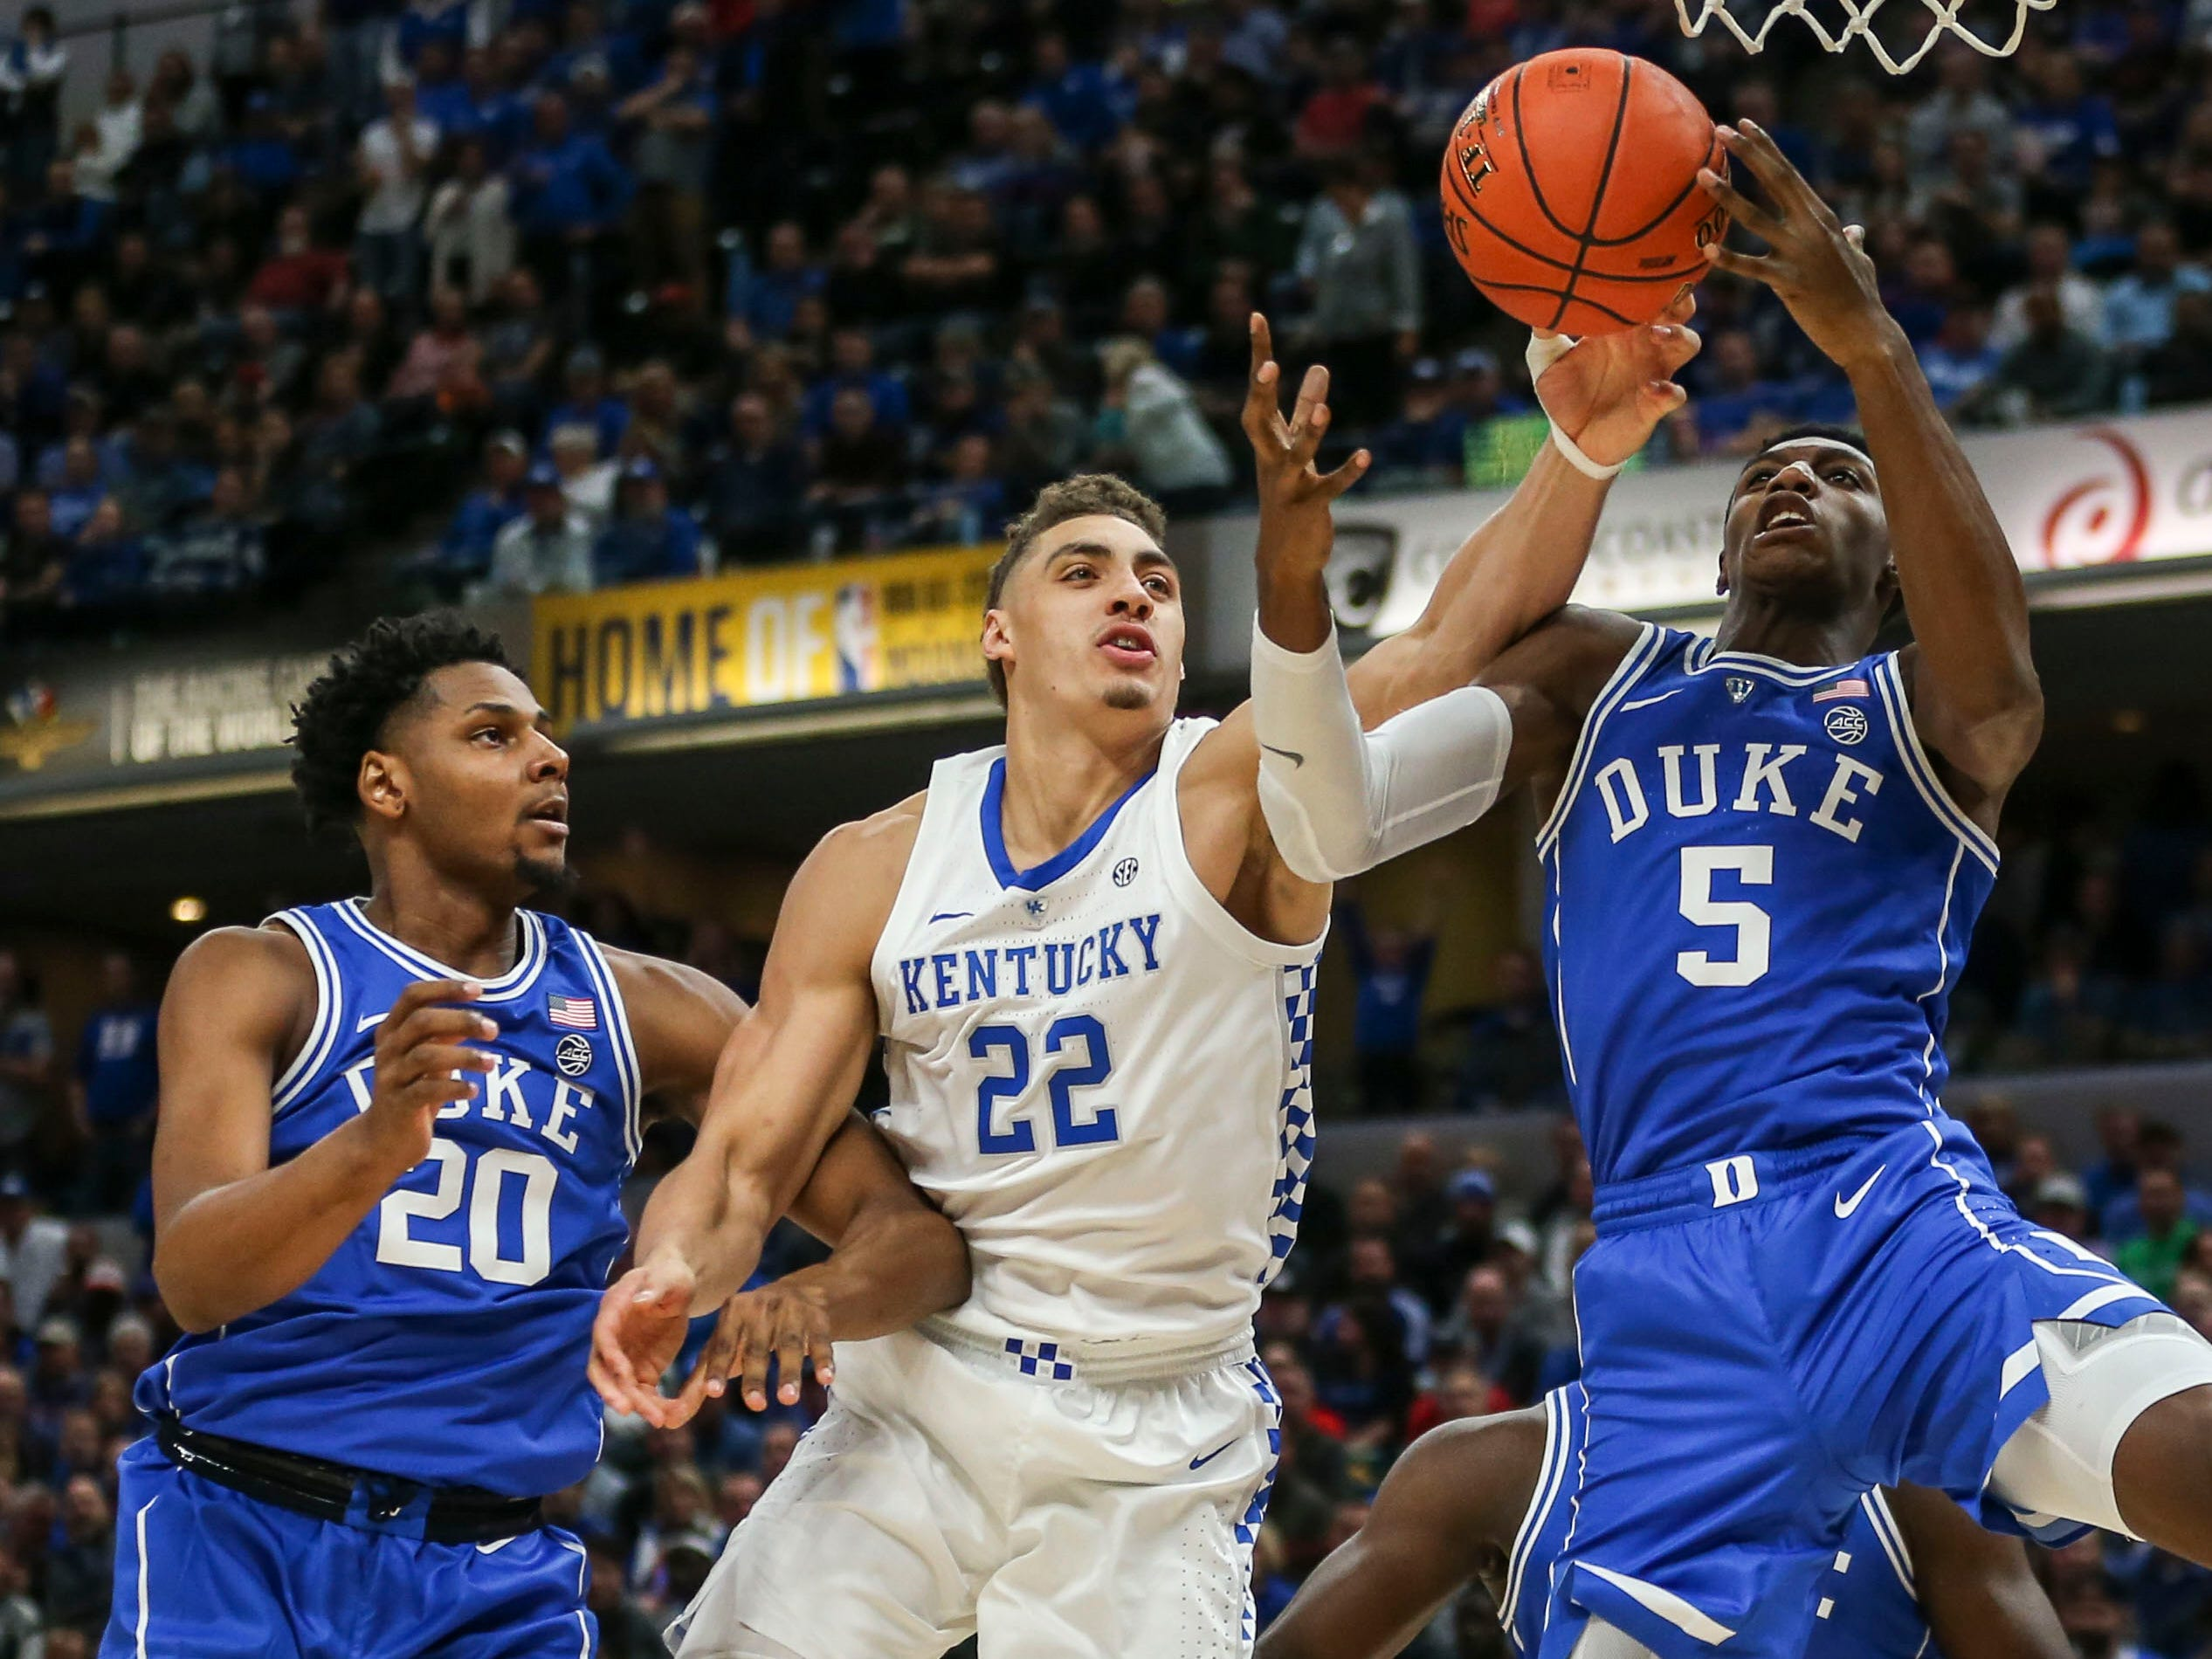 Kentucky's Reid Travis battles Duke's R.K. Barrett, right, and Marques Bolden for a rebound as the Blue Devils cruised past Kentucky 118-84 in the Champions Classic Tuesday night. Nov. 6, 2018